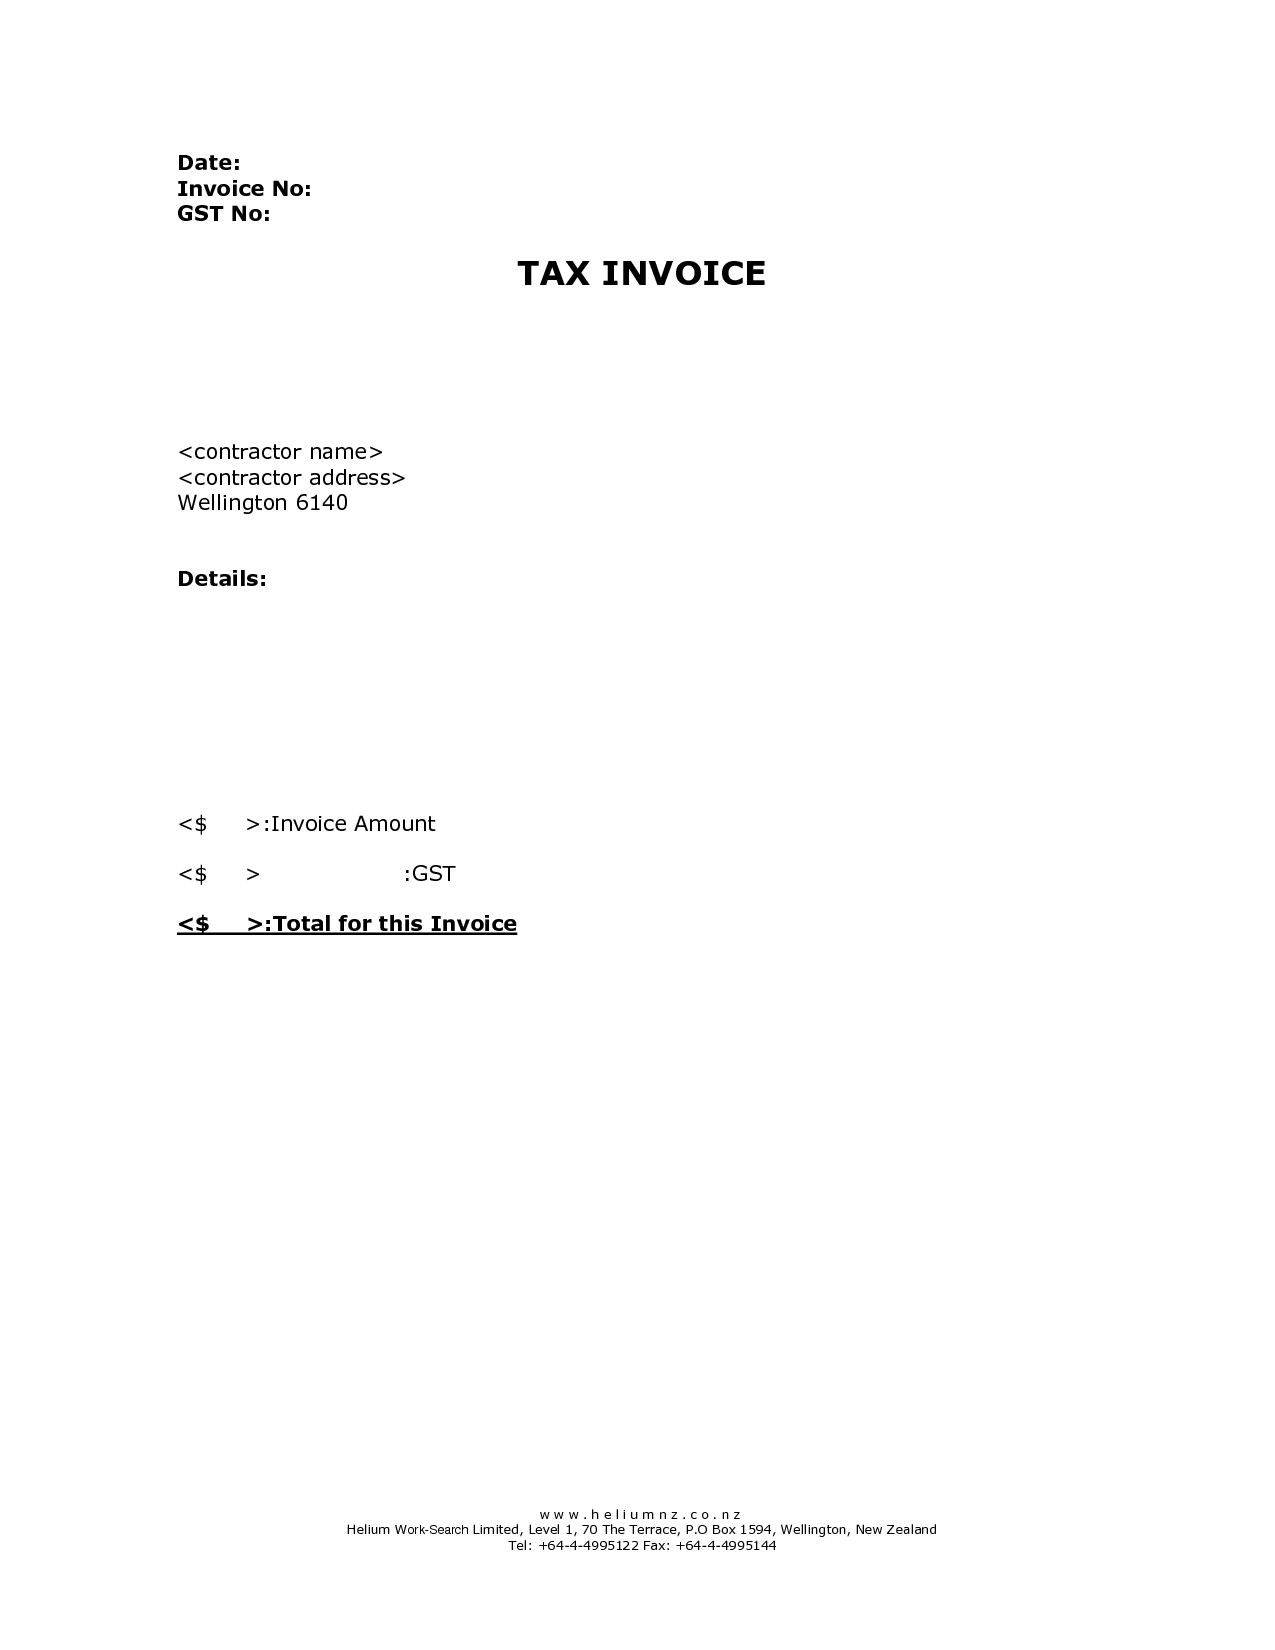 invoice template nz cool tax invoice template nz download top invoice templates 1275 X 1650